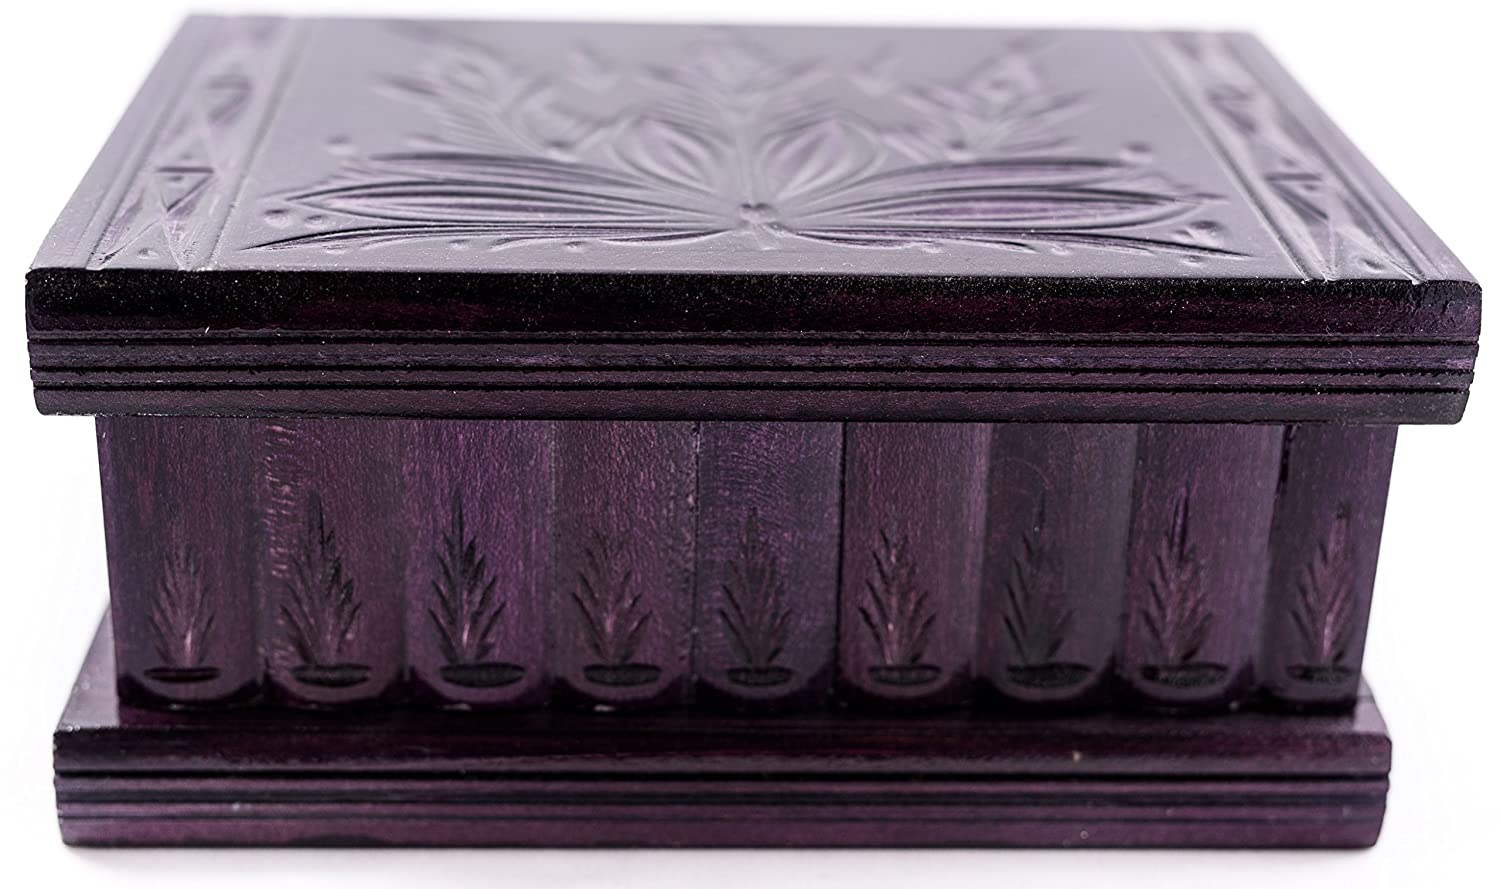 Handmade Wooden Puzzle Boxes with Hidden Compartment (Large) - Top Quality Elegant Box with Easy Open/Closing Mechanism - Decorative Storage Box for Jewelry, Toys, Puzzles - Great Gift All Purple